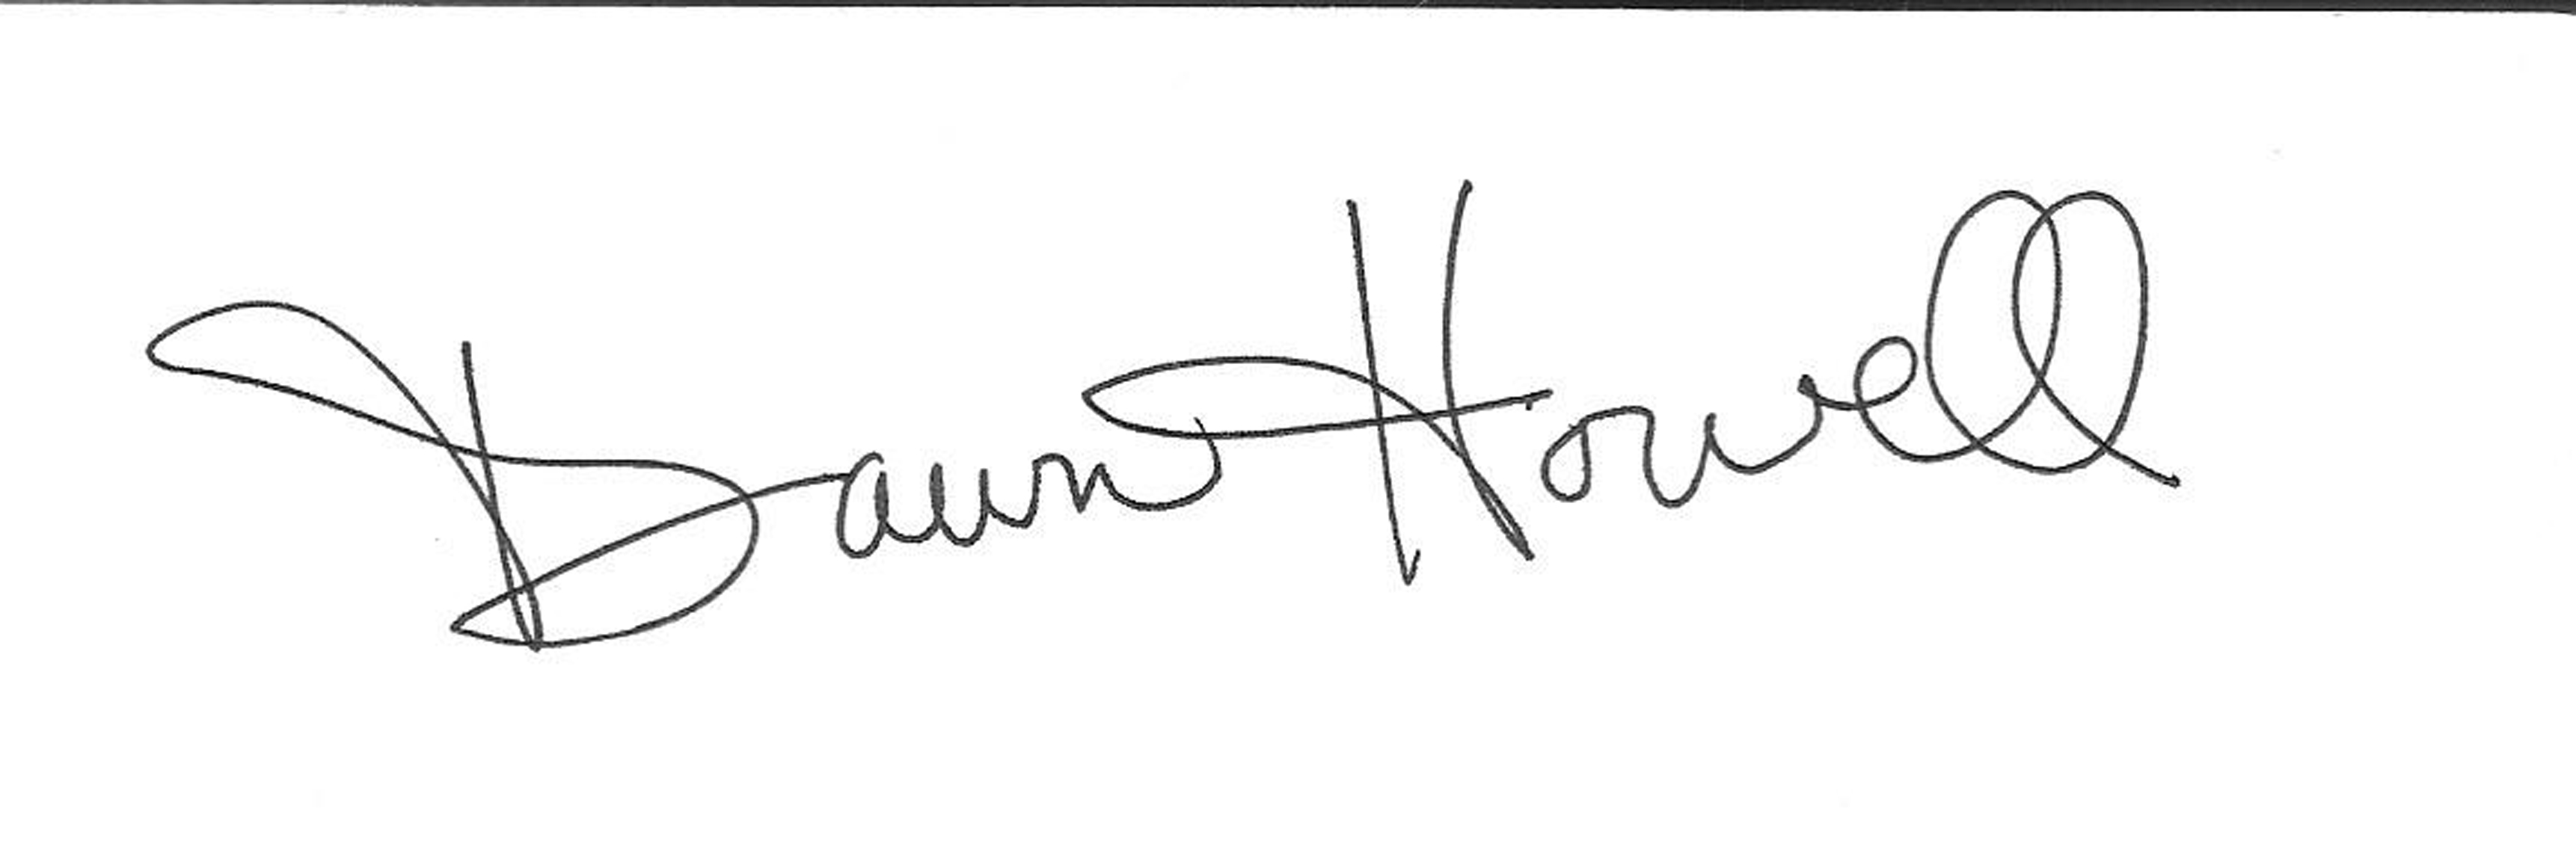 Dawn Howell's Signature